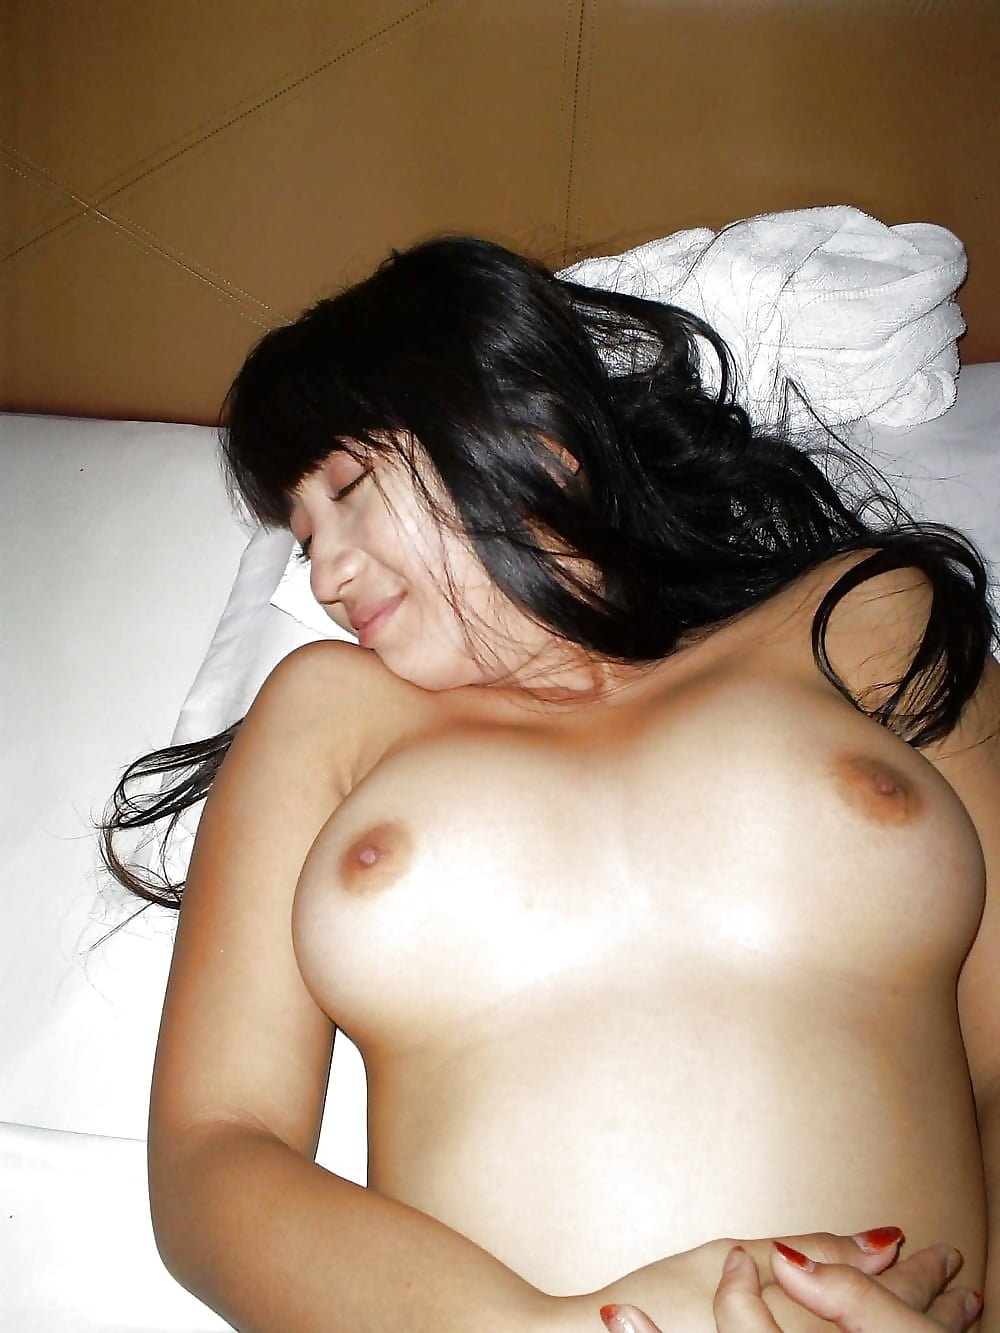 Black naked indonesian gf girl